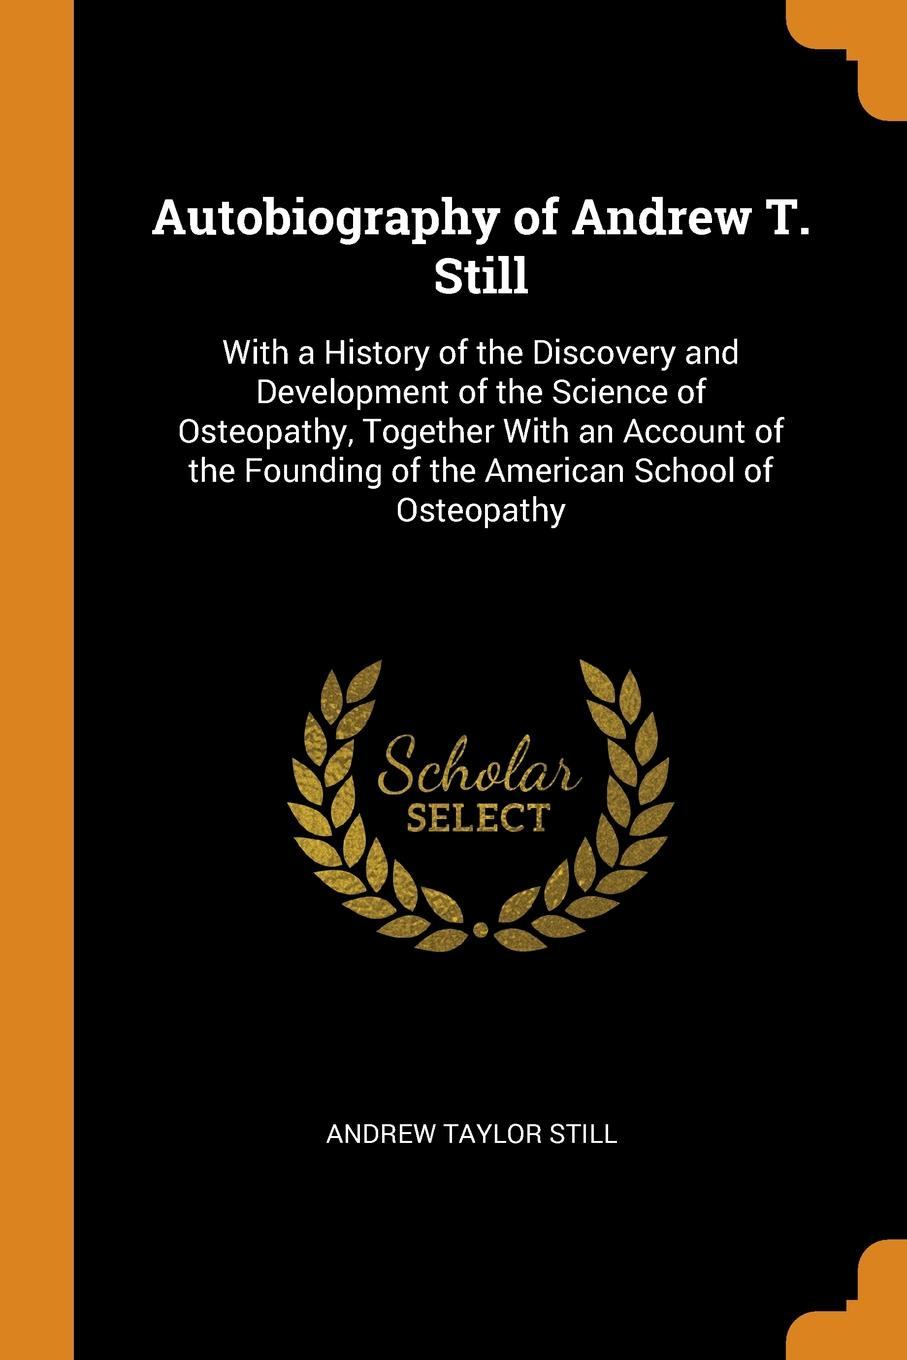 лучшая цена Andrew Taylor Still Autobiography of Andrew T. Still. With a History of the Discovery and Development of the Science of Osteopathy, Together With an Account of the Founding of the American School of Osteopathy